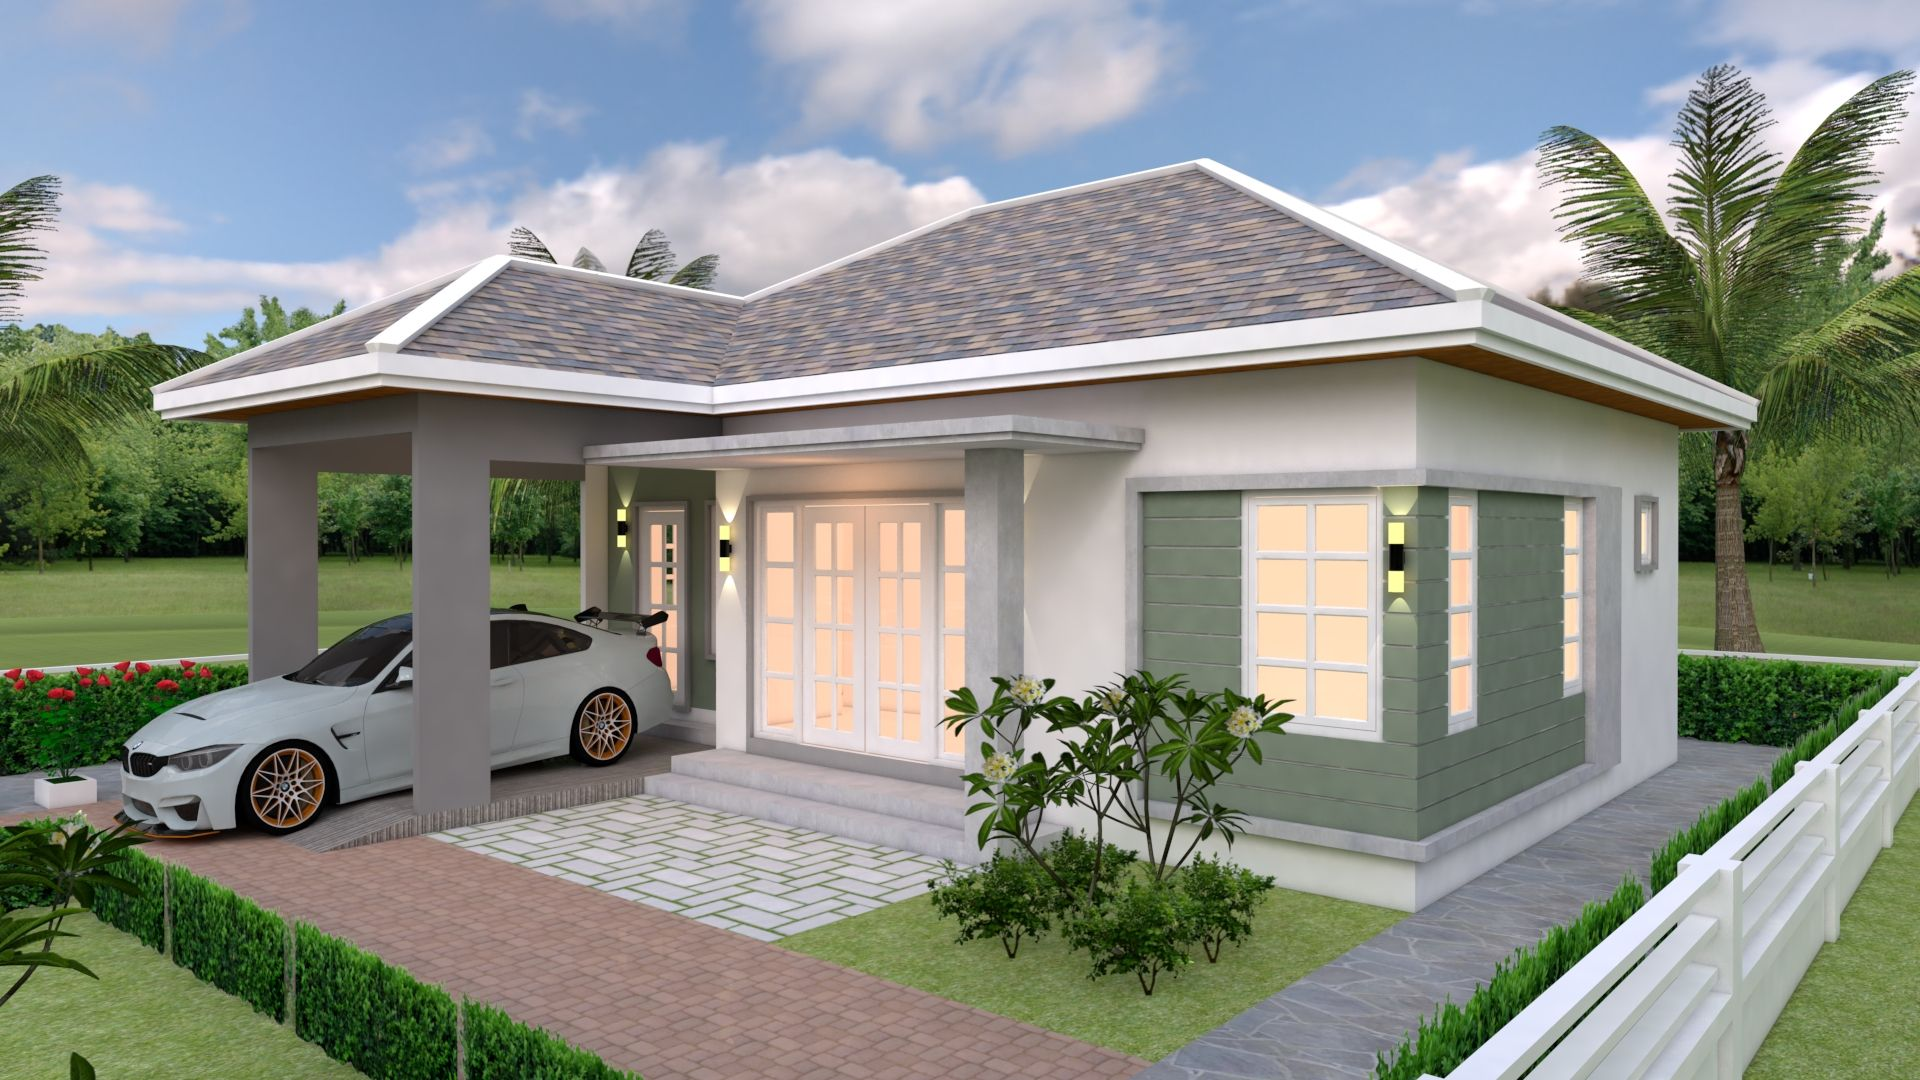 House Plans 10x10 With 3 Bedrooms House Plans S House Plans Small House Design Plans House Design